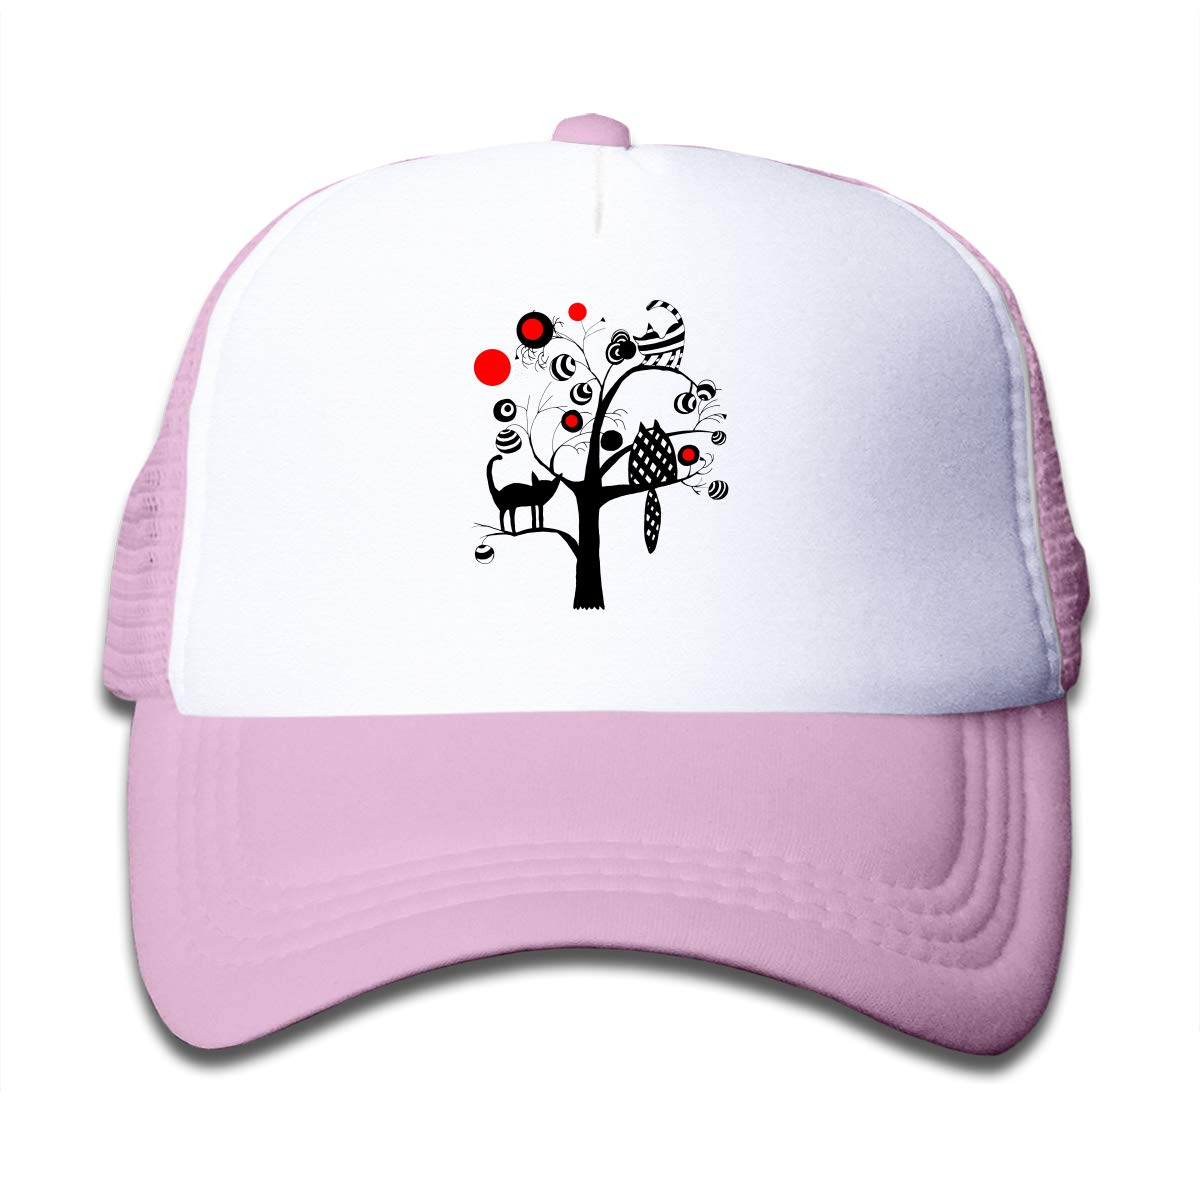 Tree with Cats and Fruits Kids Fishing Hats Caps Black